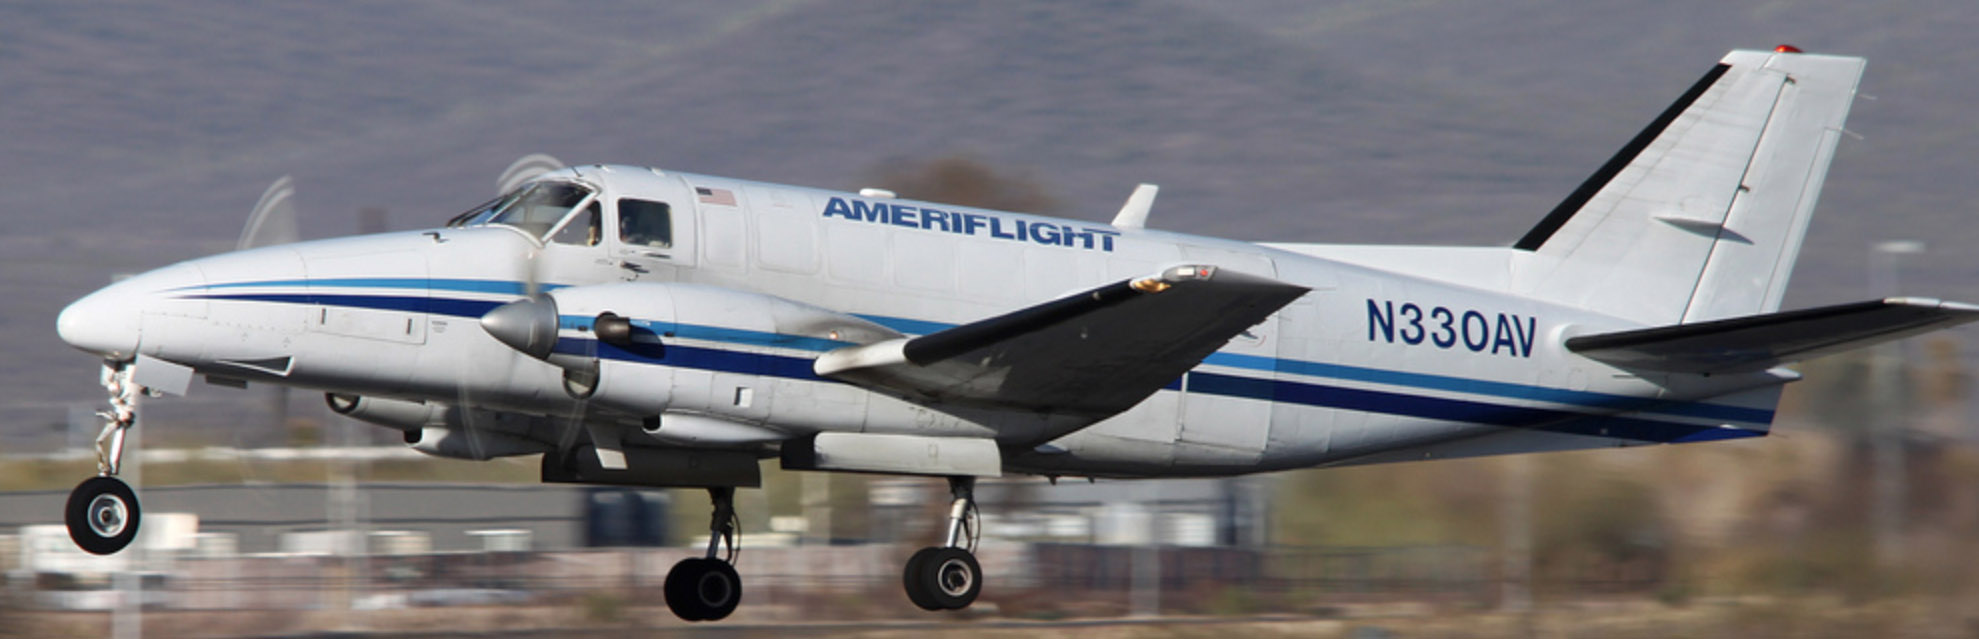 Ameriflight Beech 99 at lift off